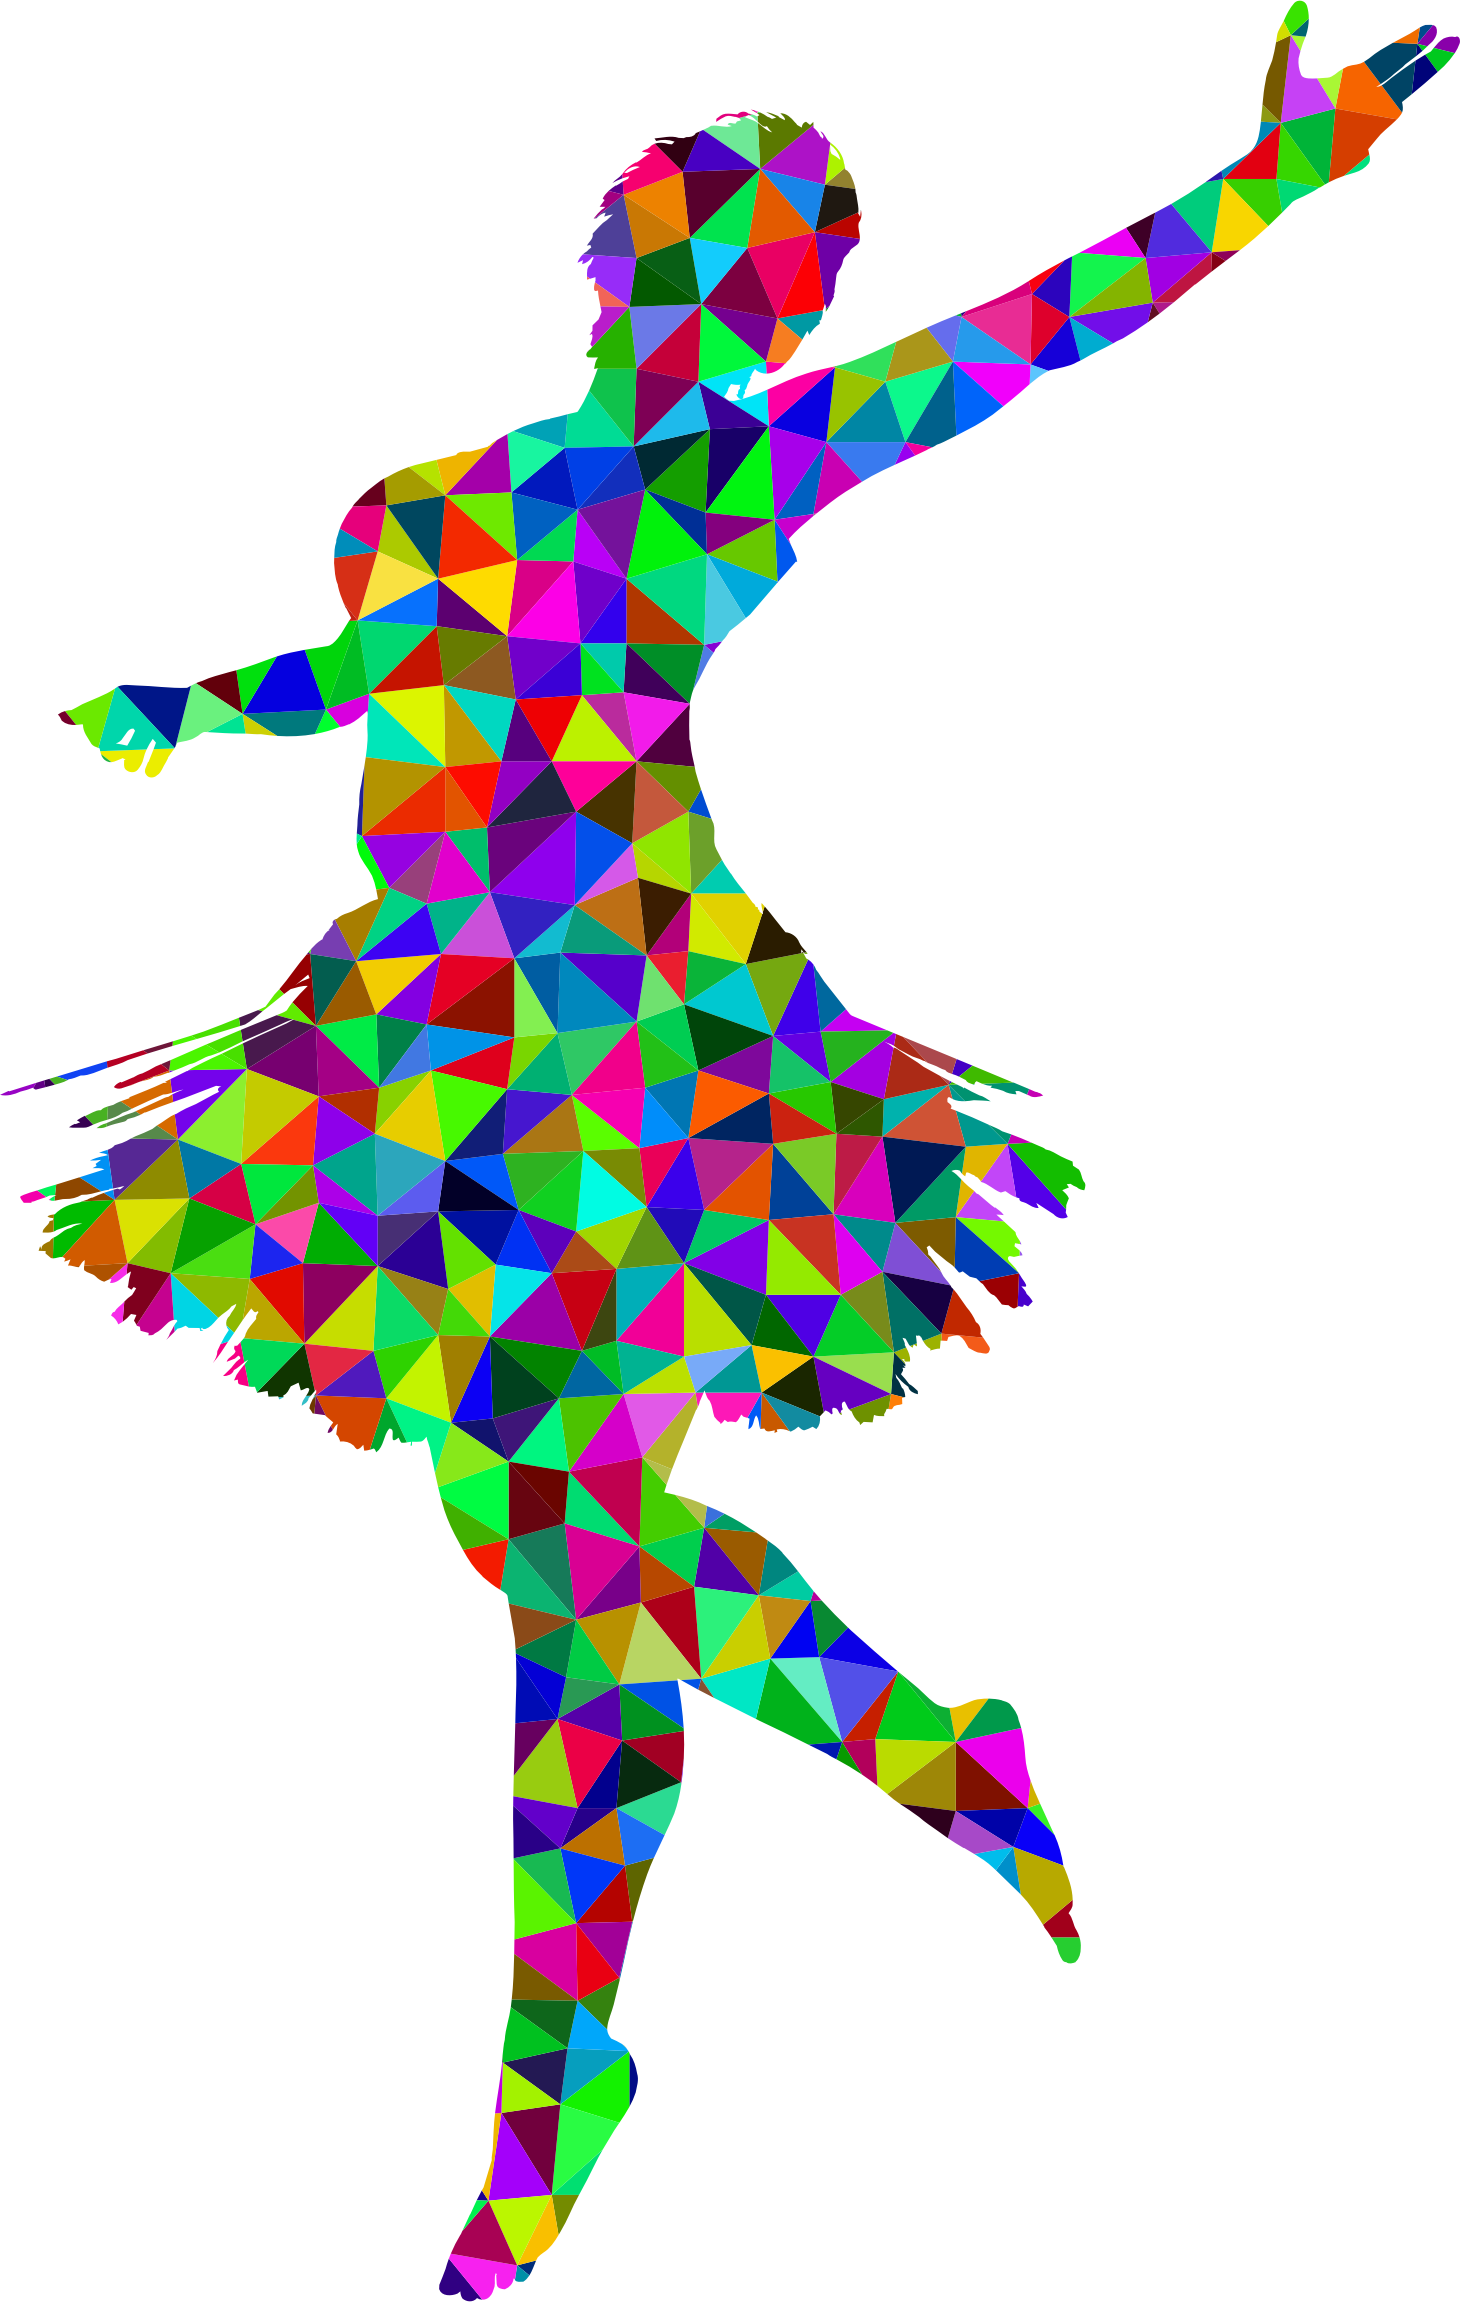 Prismatic Low Poly Ballerina by GDJ